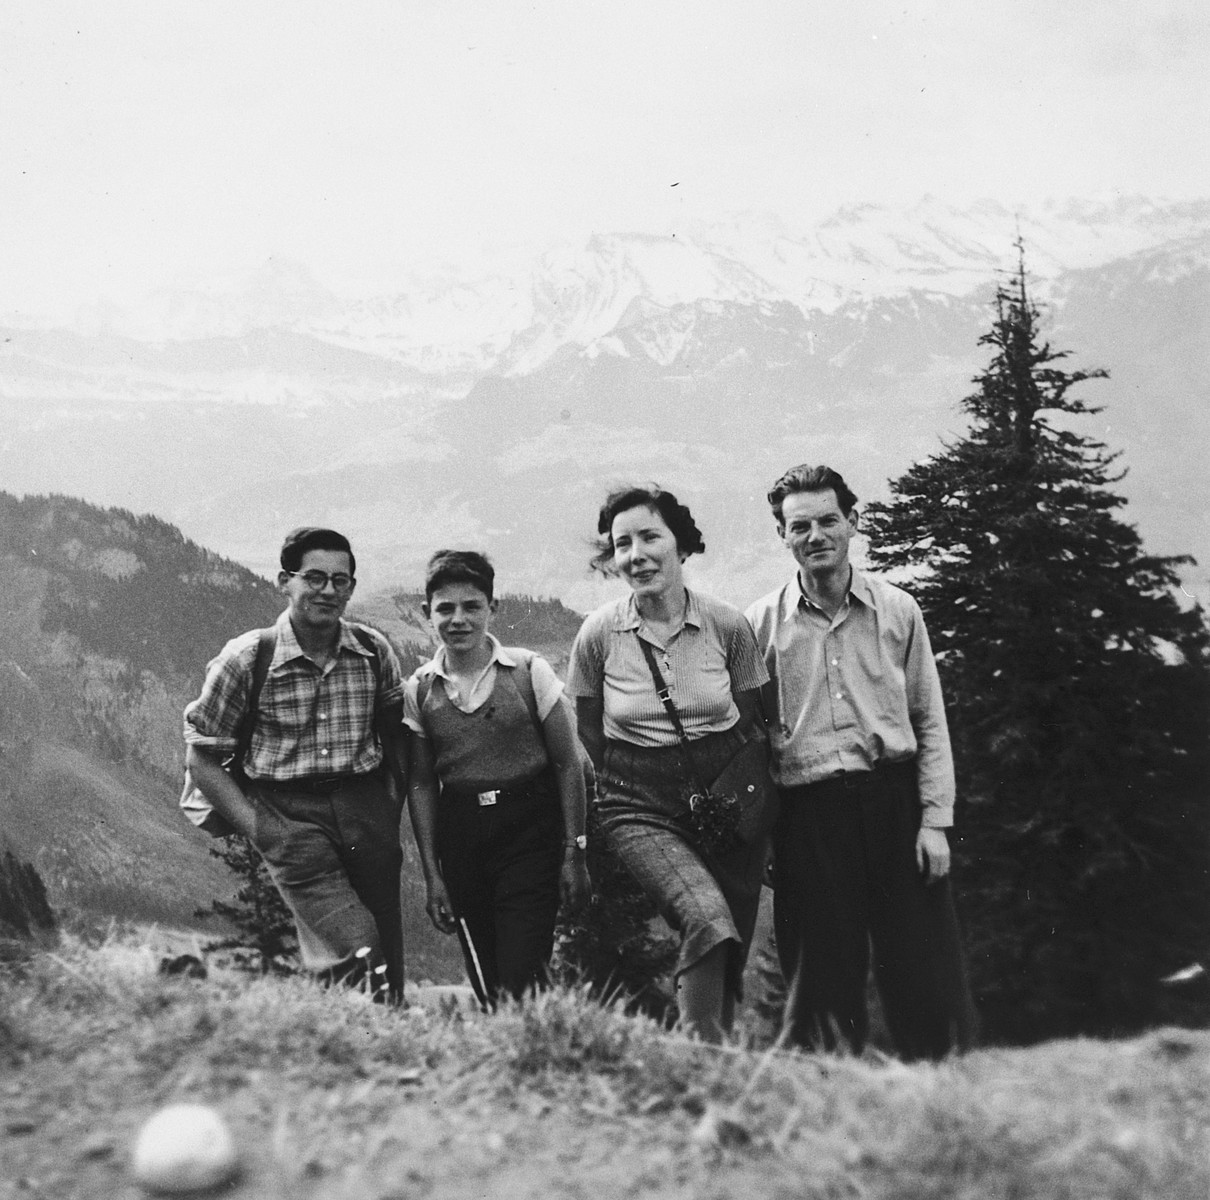 Two Jewish refugee youth pose with the Dym family in the hills outside of Zurich.  Pictured are Hans Garfunkel (far left) and Peter Salz (second from the left).